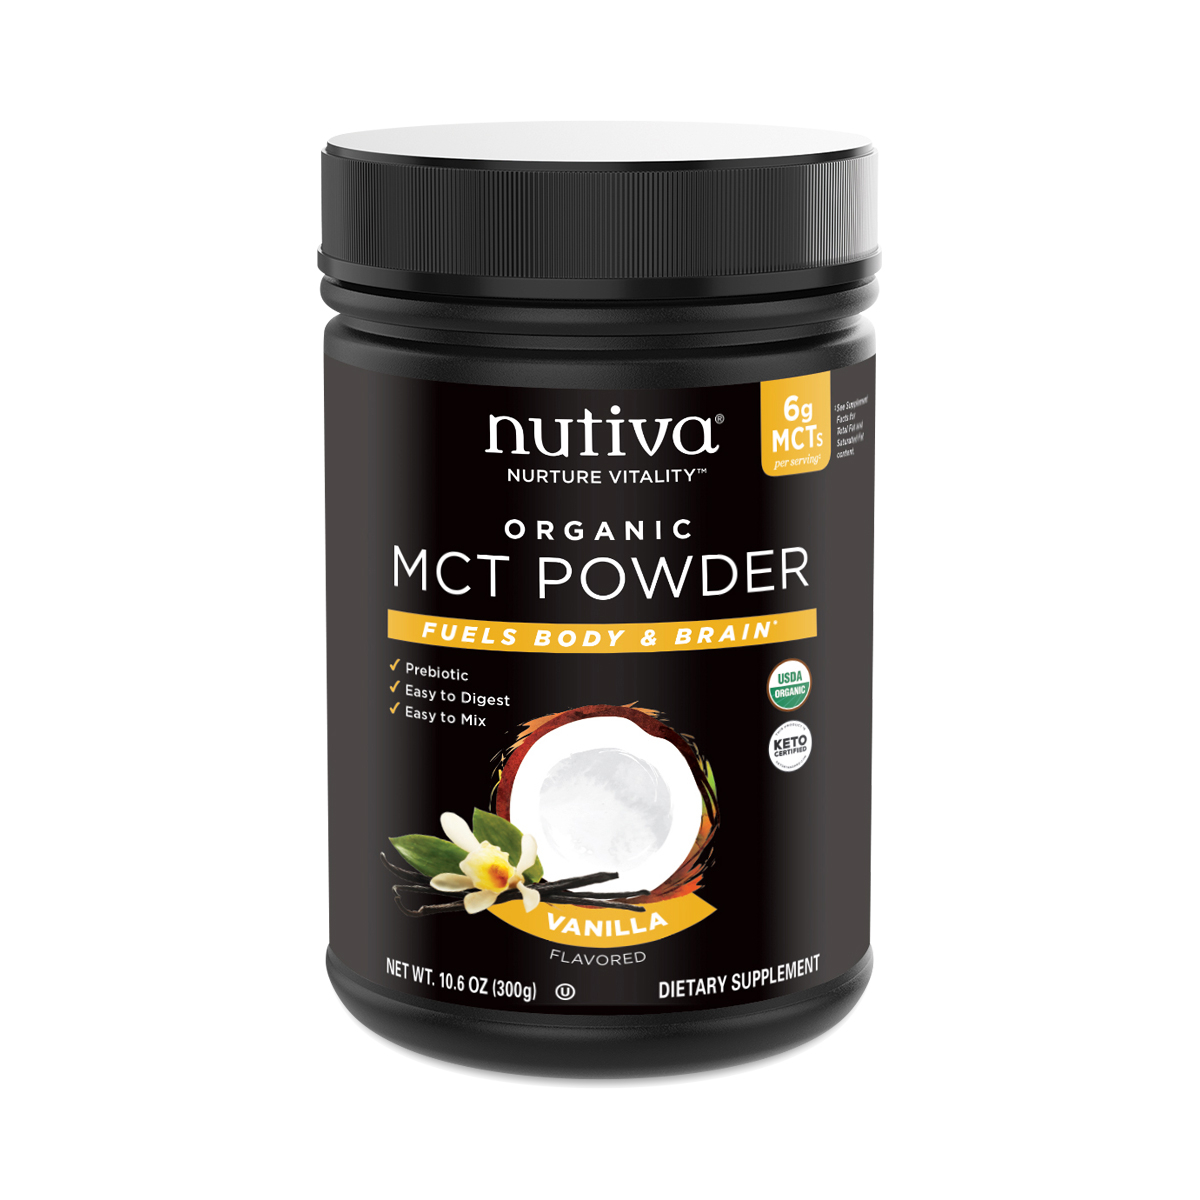 What is MCT Oil Used For - Nutiva Organic MCT Powder, Vanilla 10.6 oz container